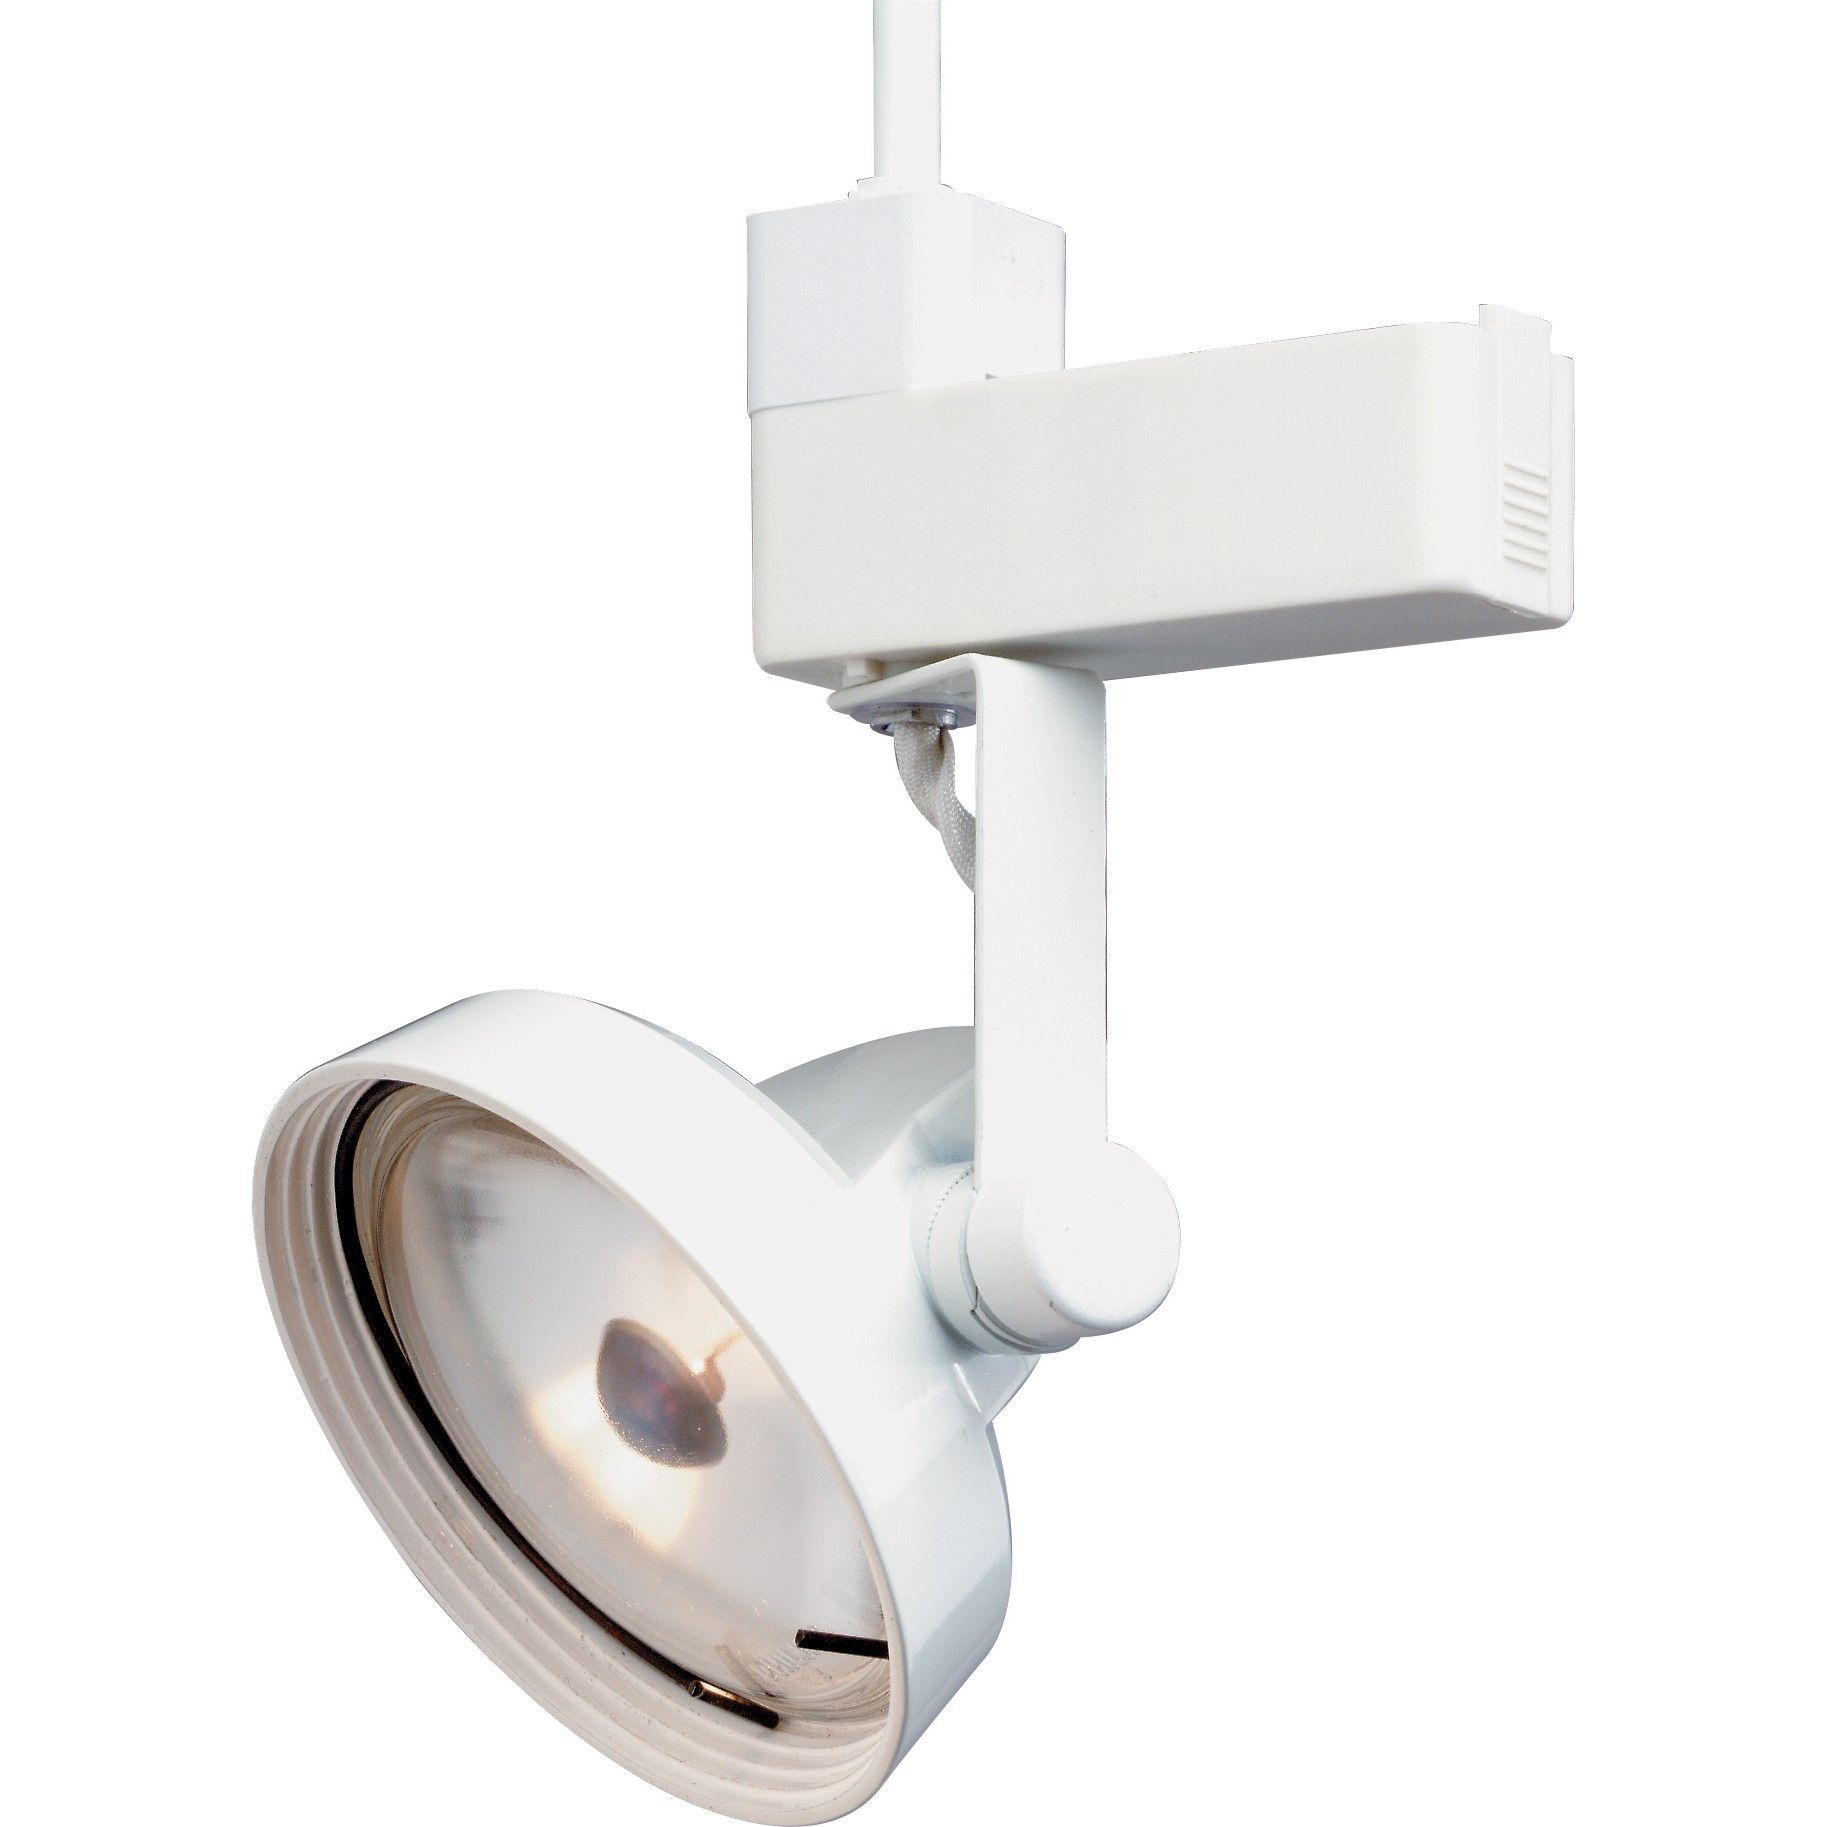 track lighting styles transitional monorail nuvo th271 1light par36 track lighting head gimbal ring fixture type heads style transitional finish white width 425 ring pinterest bulbs